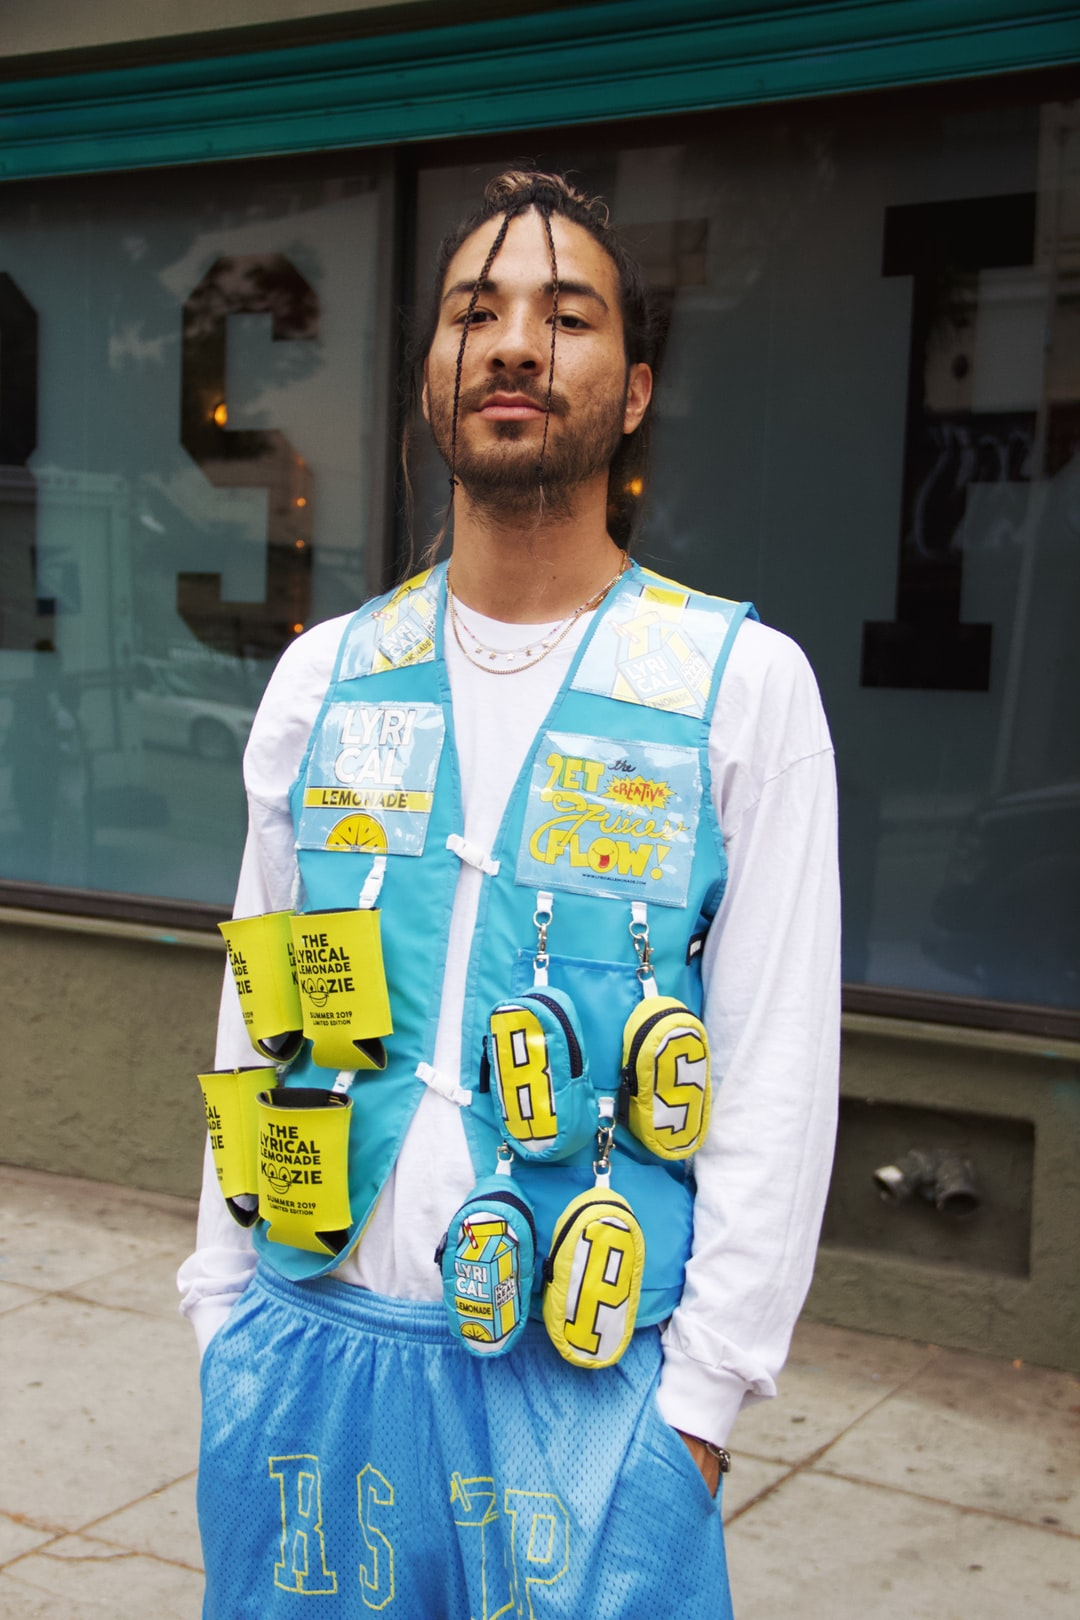 The World's first LYRICAL LEMONADE/RSVP GALLERY vest! Upcycled from 4 can koozies, a t-shirt, and lemonade cardboard packaging! This piece is absurd.